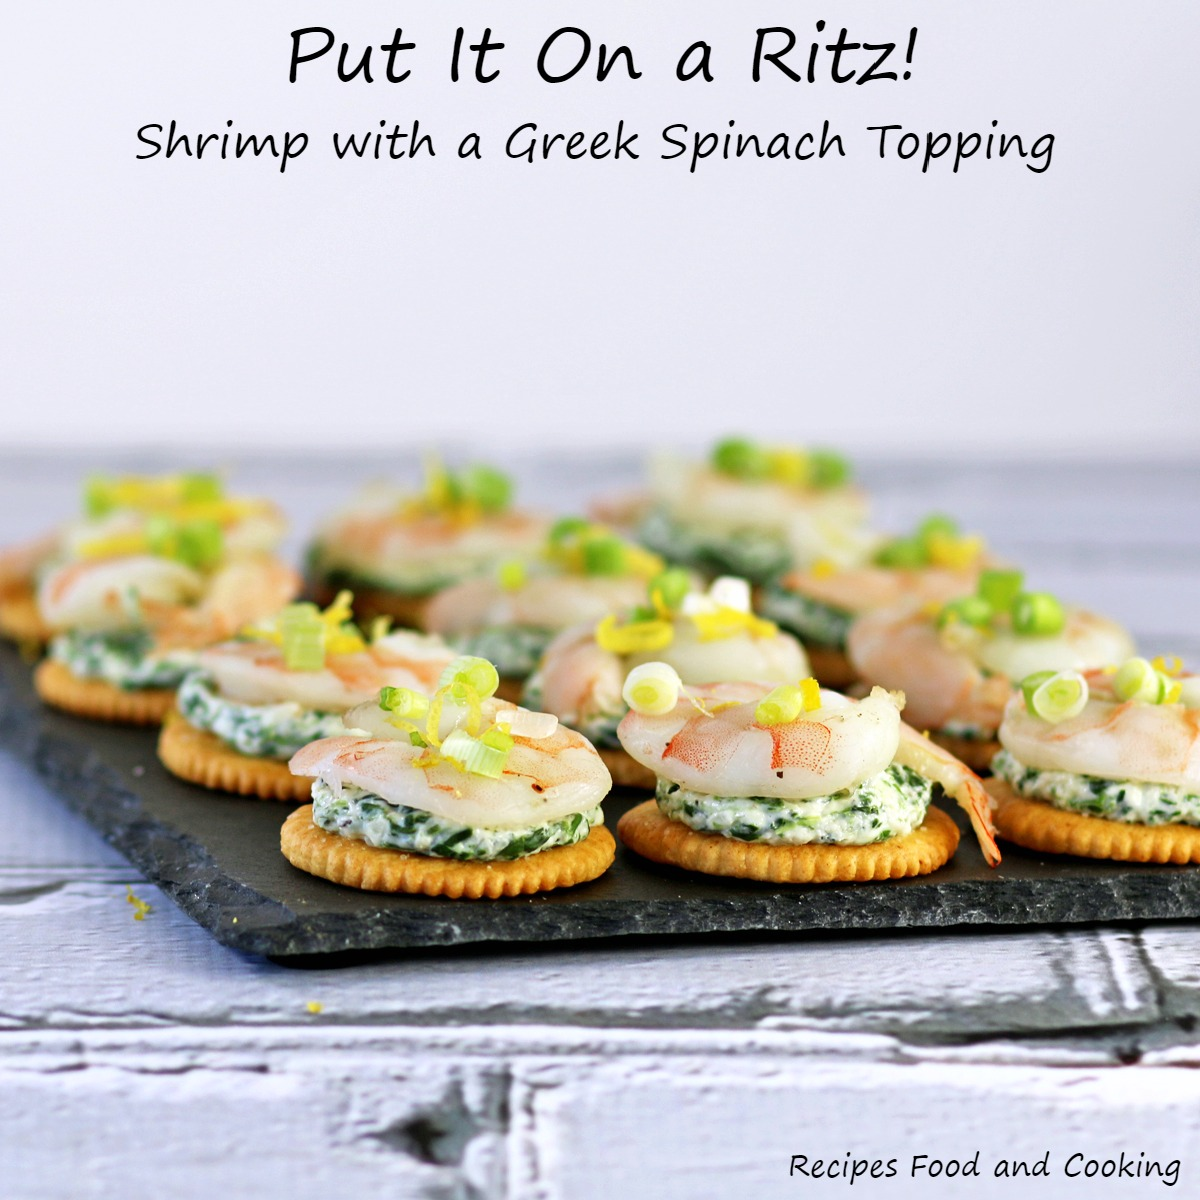 Shrimp with Greek Spinach Topping on a Ritz